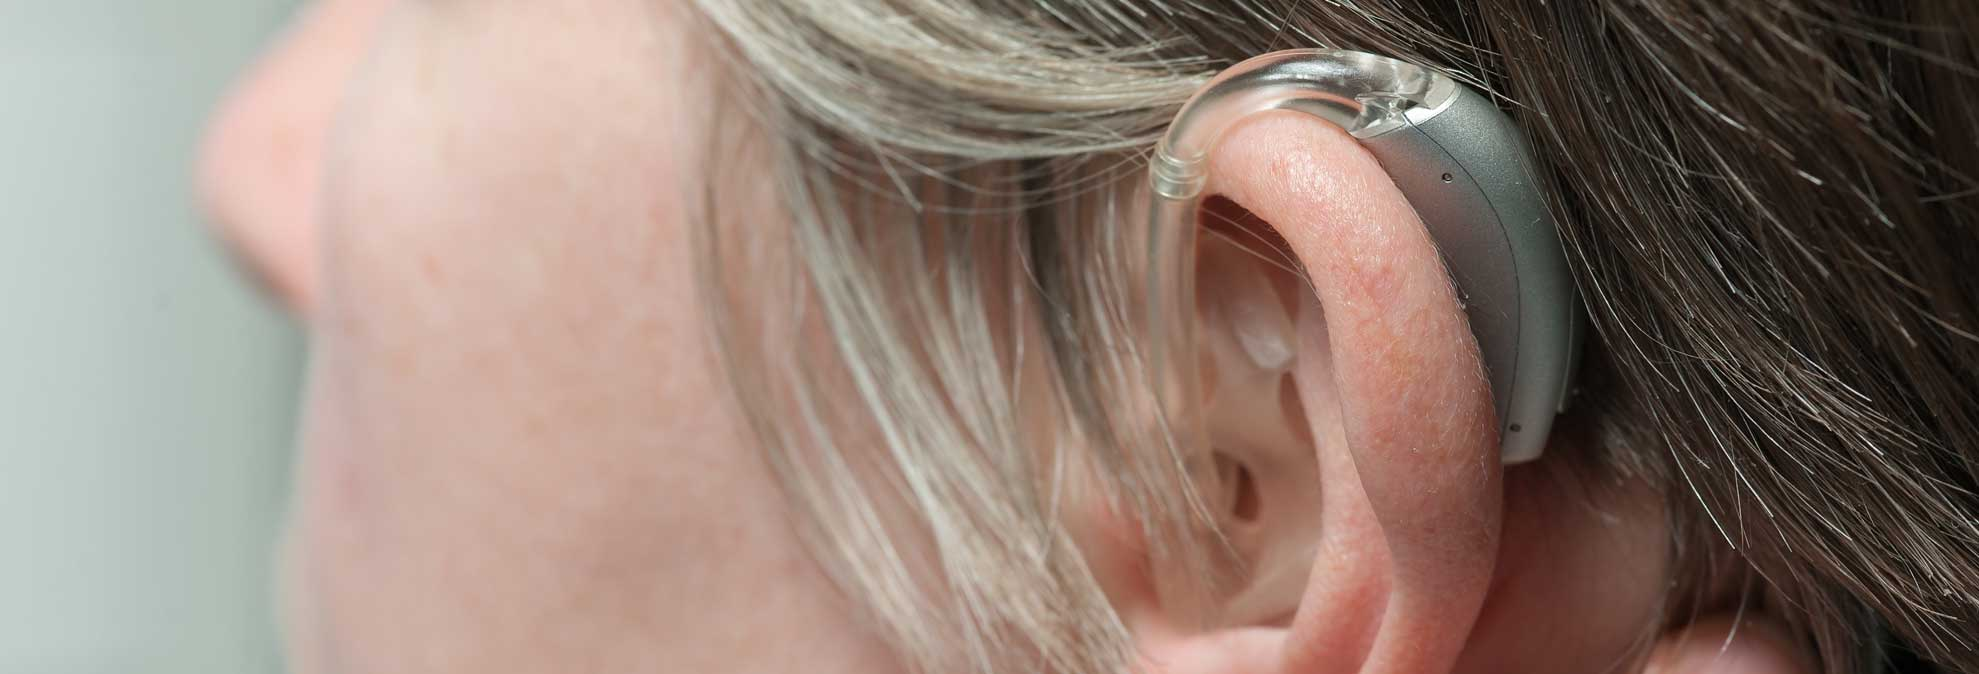 Best Hearing Aid Buying Guide - Consumer Reports